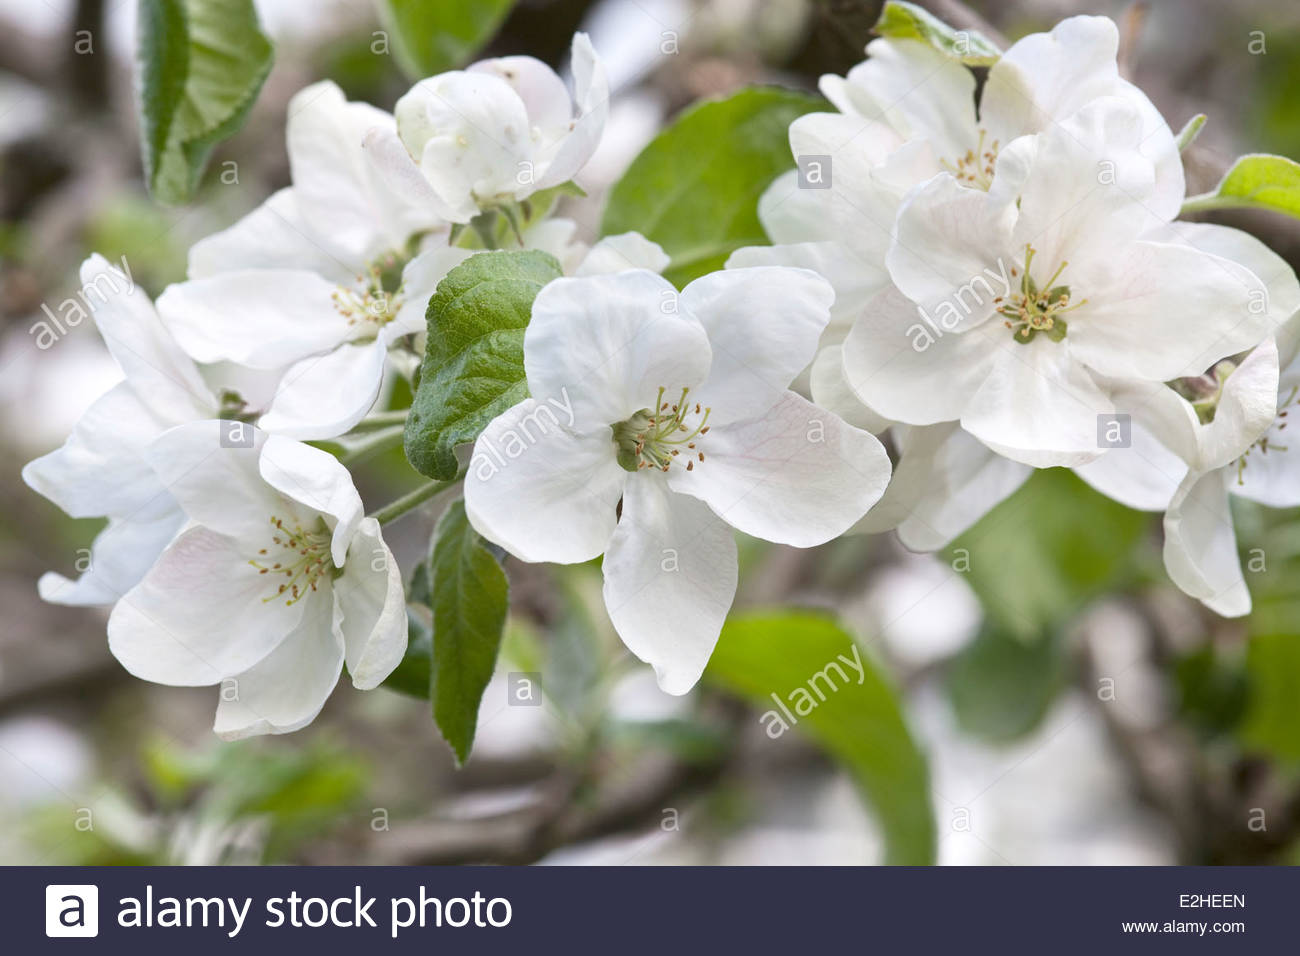 White flowers of an apple tree - Stock Image